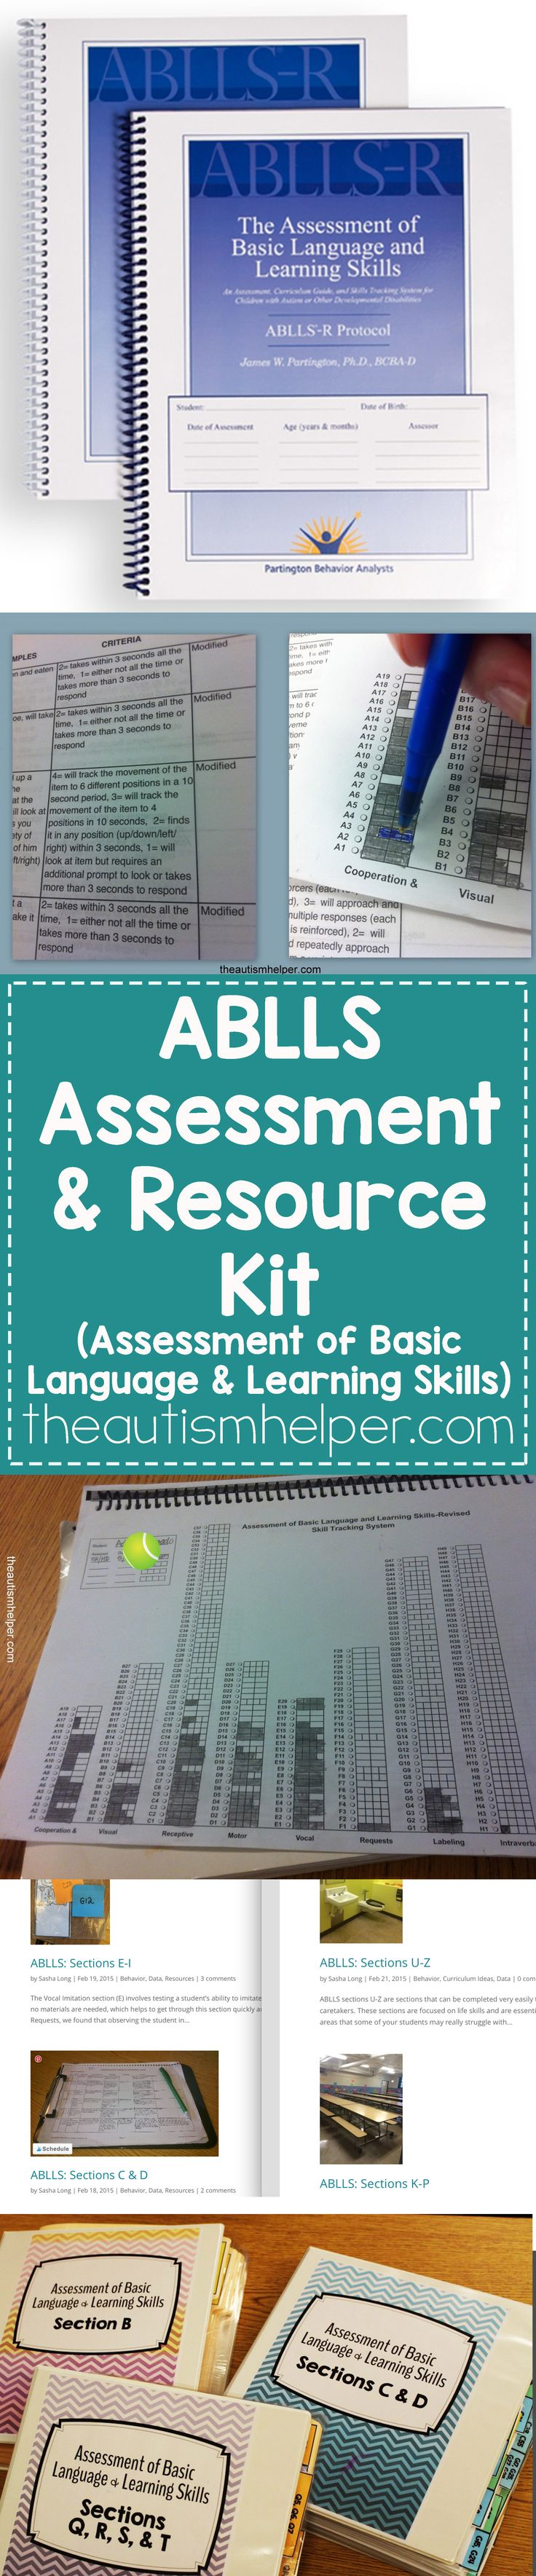 We're all about the ABLLS (Assessment of Basic Language & Learning Skills) assessment & have created a resource kit to help with the complexity! From theautismhelper.com #theautismhelper